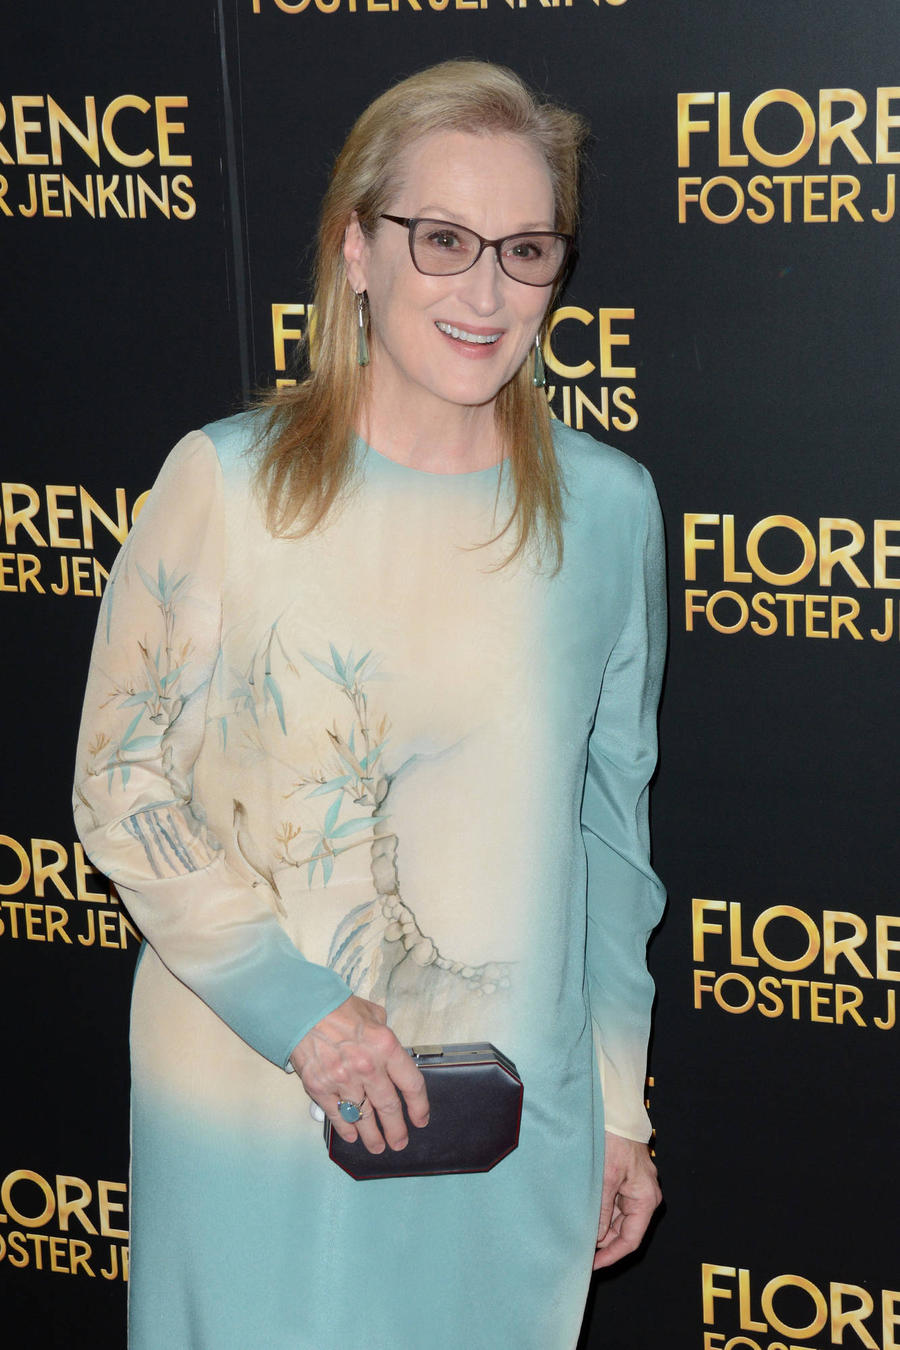 Meryl Streep Made Director Give Up His House After Film Snub